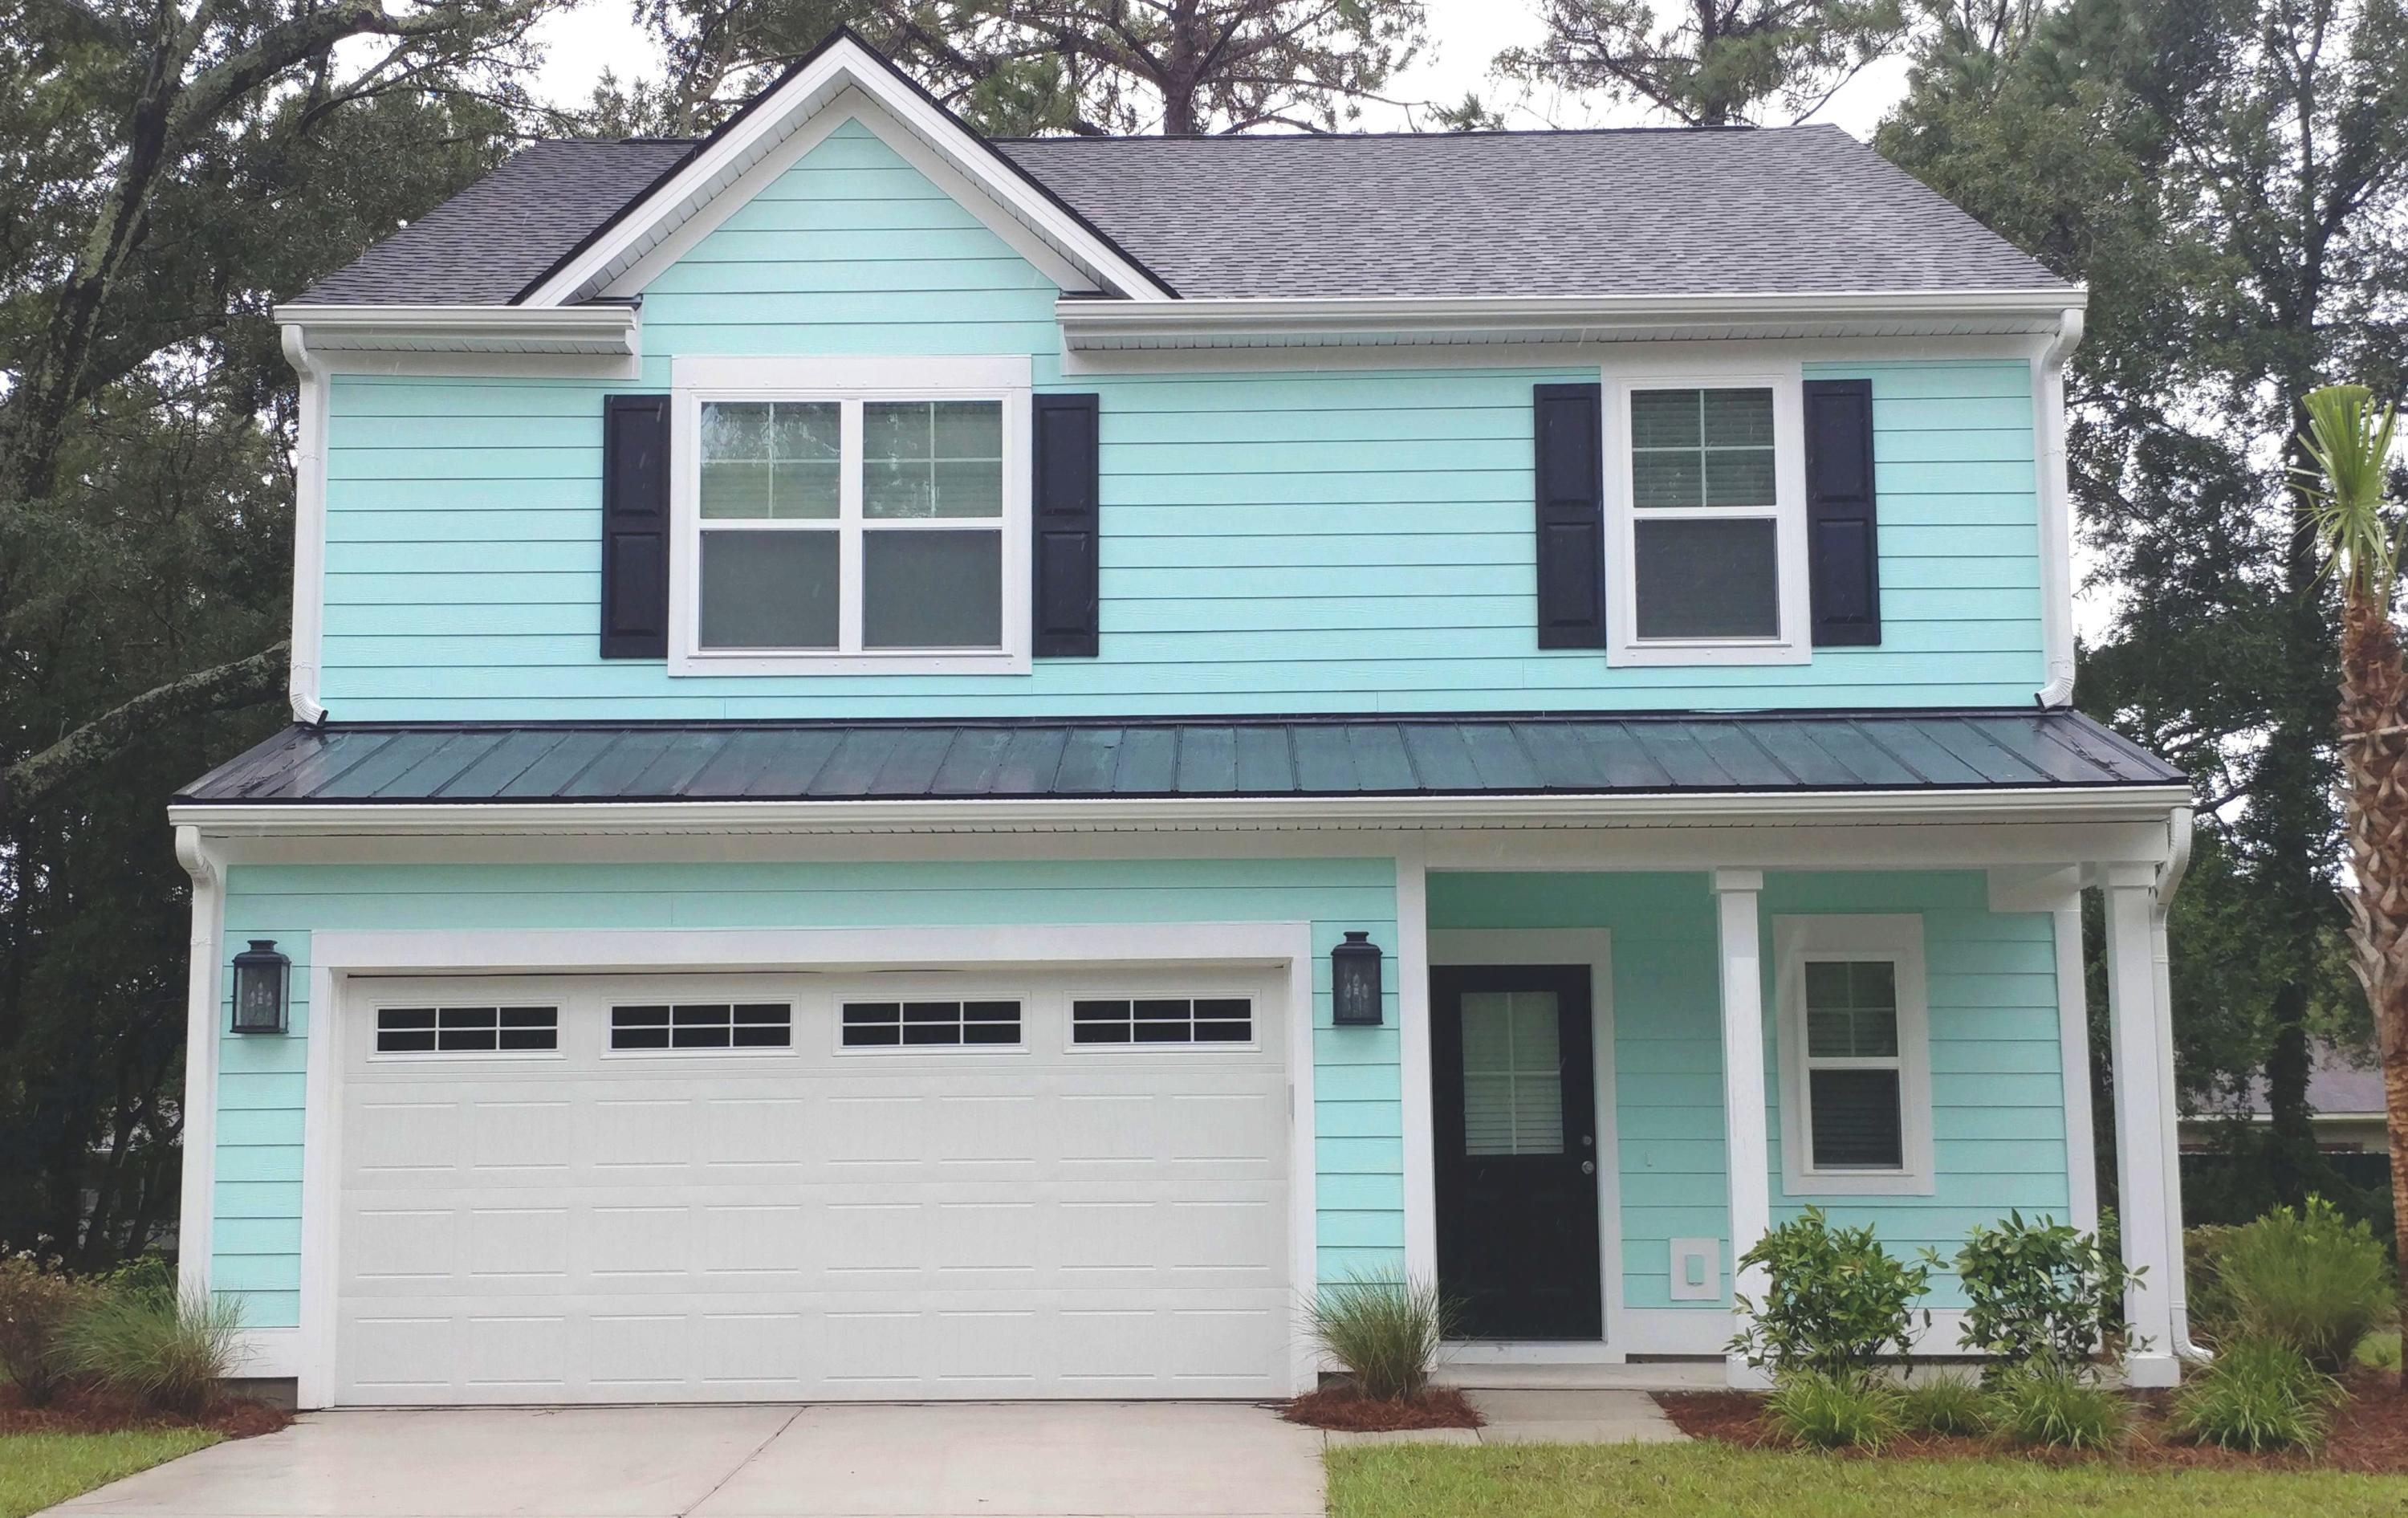 Photo of 1157 Leary St, North Charleston, SC 29406